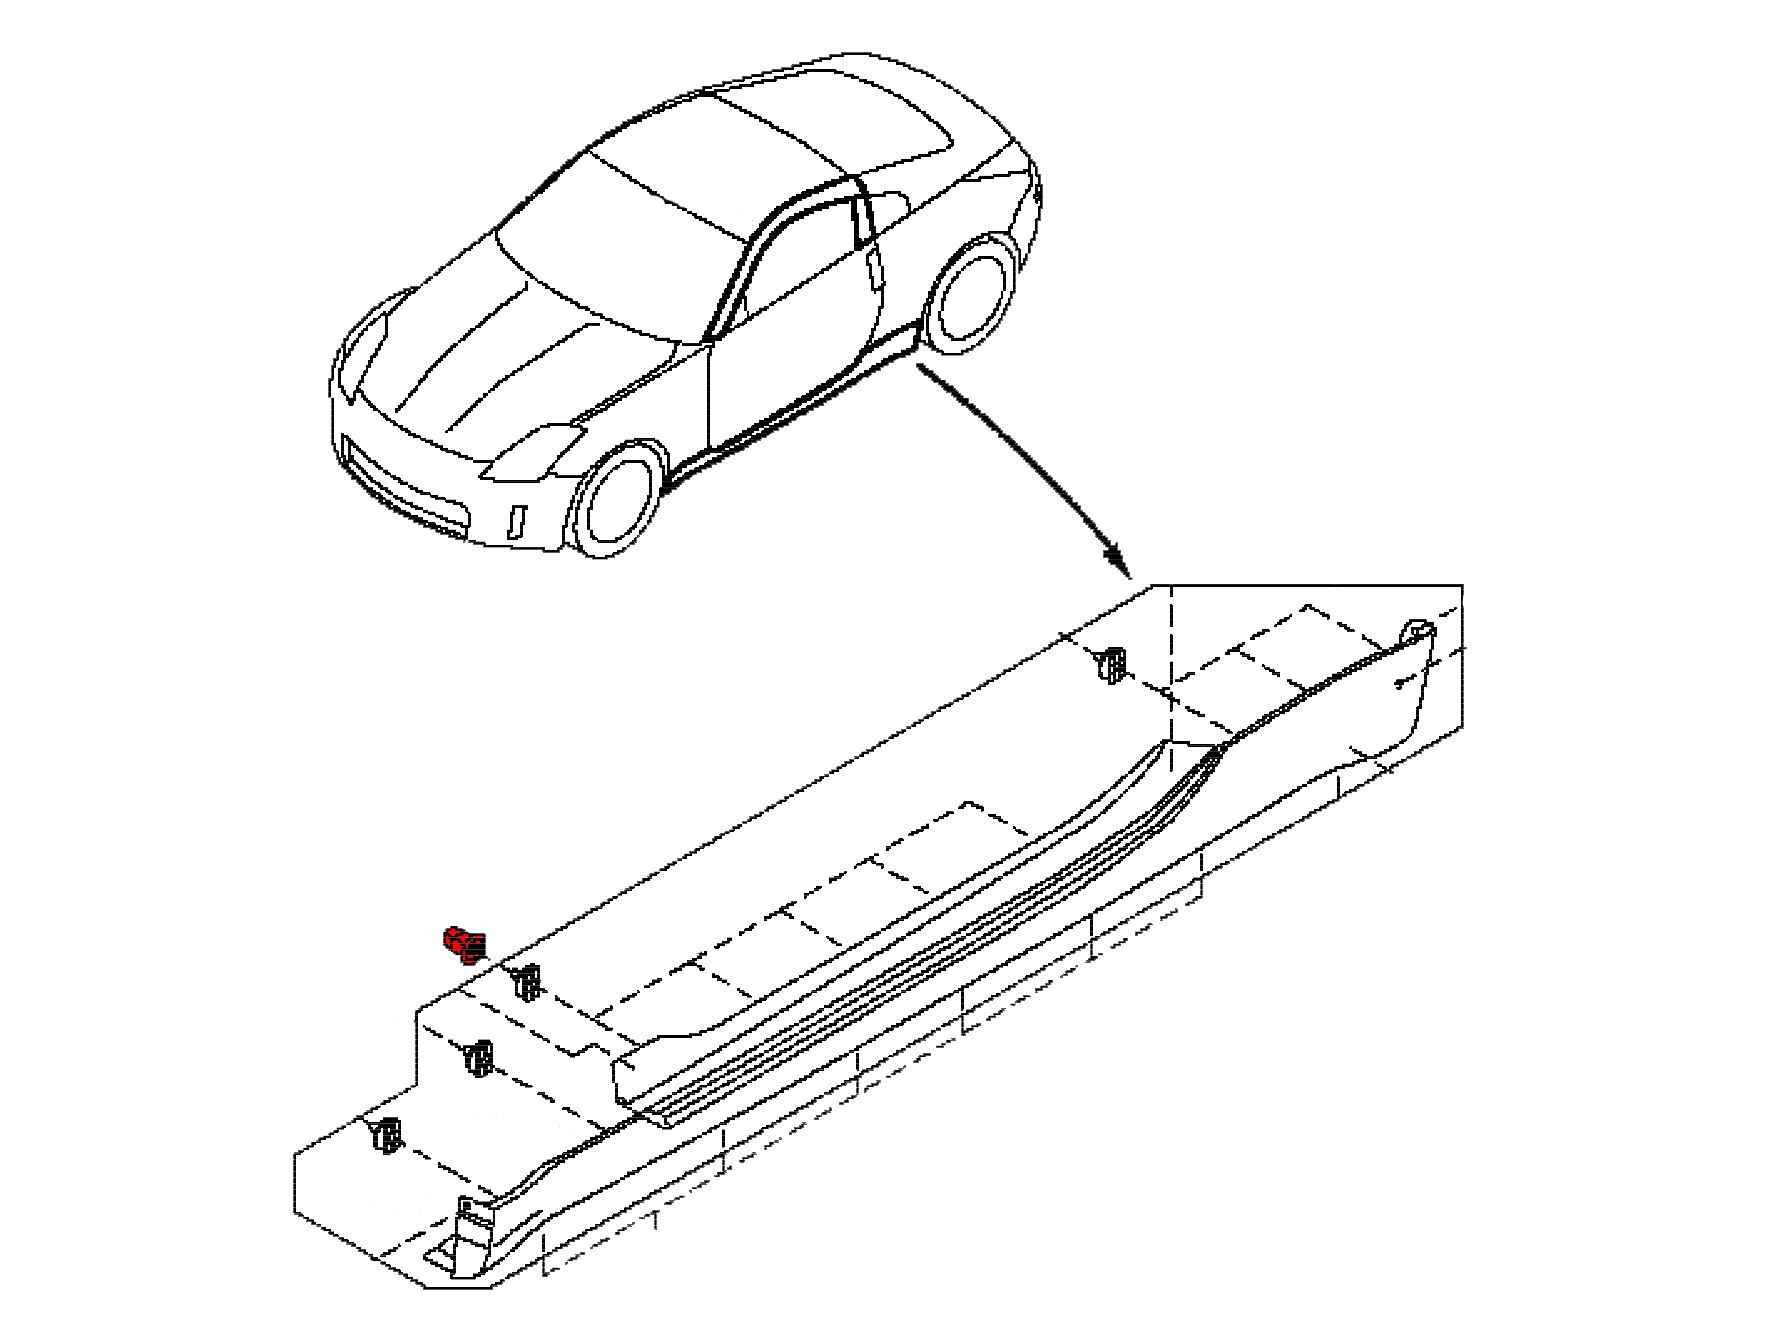 hight resolution of oem side skirt clips for the 350z this clip is snapped into the body on your 2003 2008 nissan 350z and allows the side skirt to clip into it holding it to